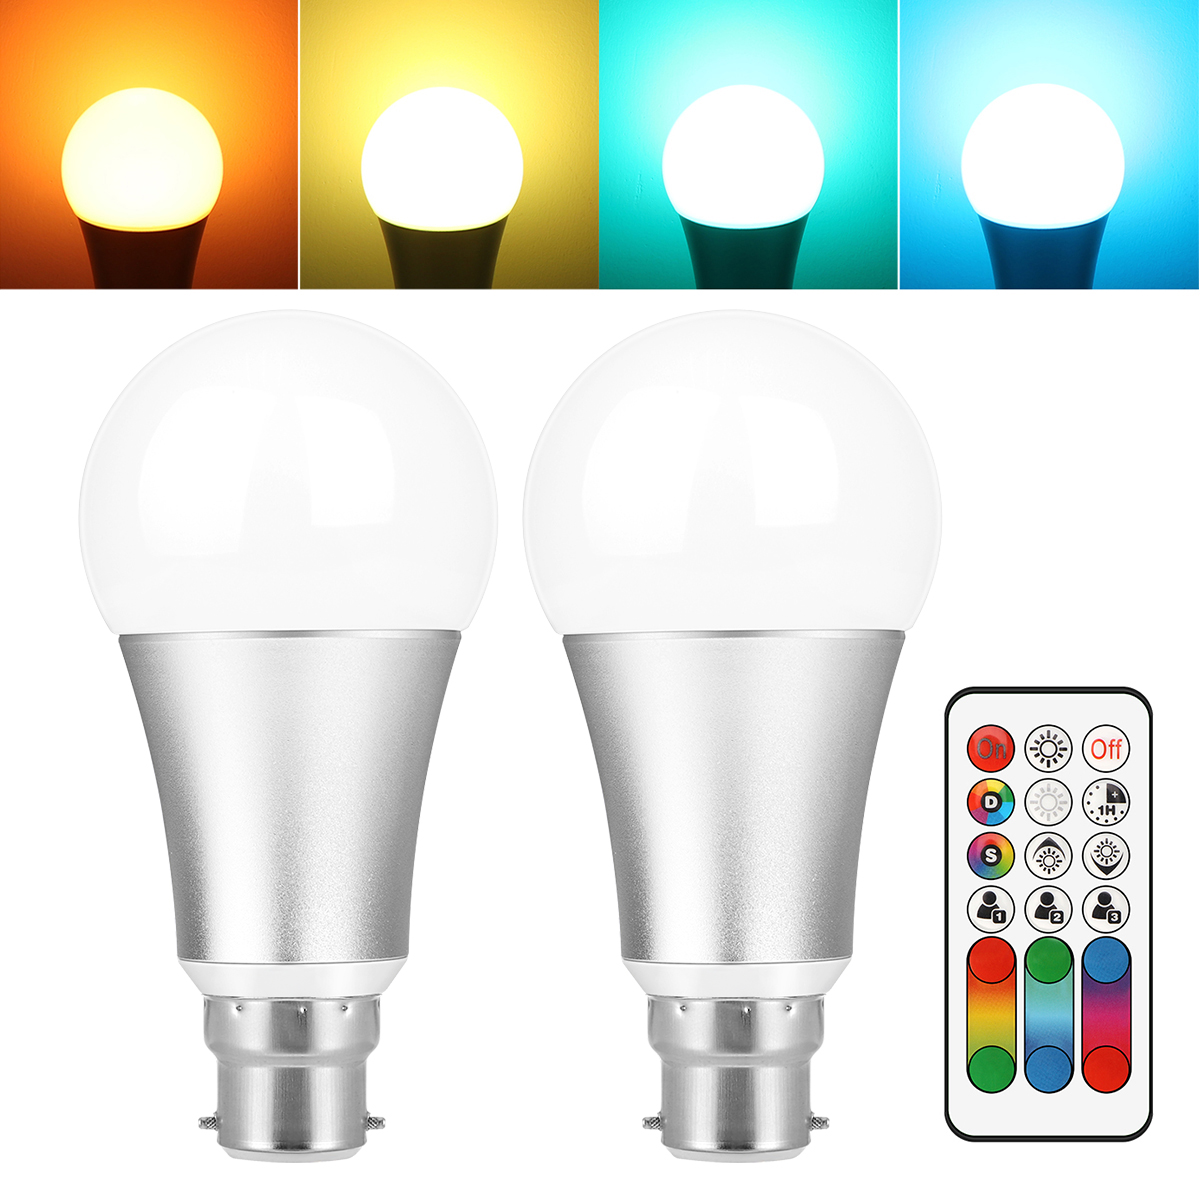 2pc 10W B22 E27 RGB LED Light Bulb Aluminum Stage Lamp 120 Colors Changing with IR Remote Support DIY Memory Function AC 85-265V jr led e27 10w 500lm led rgb light bulb w remote control white silver ac 85 265v